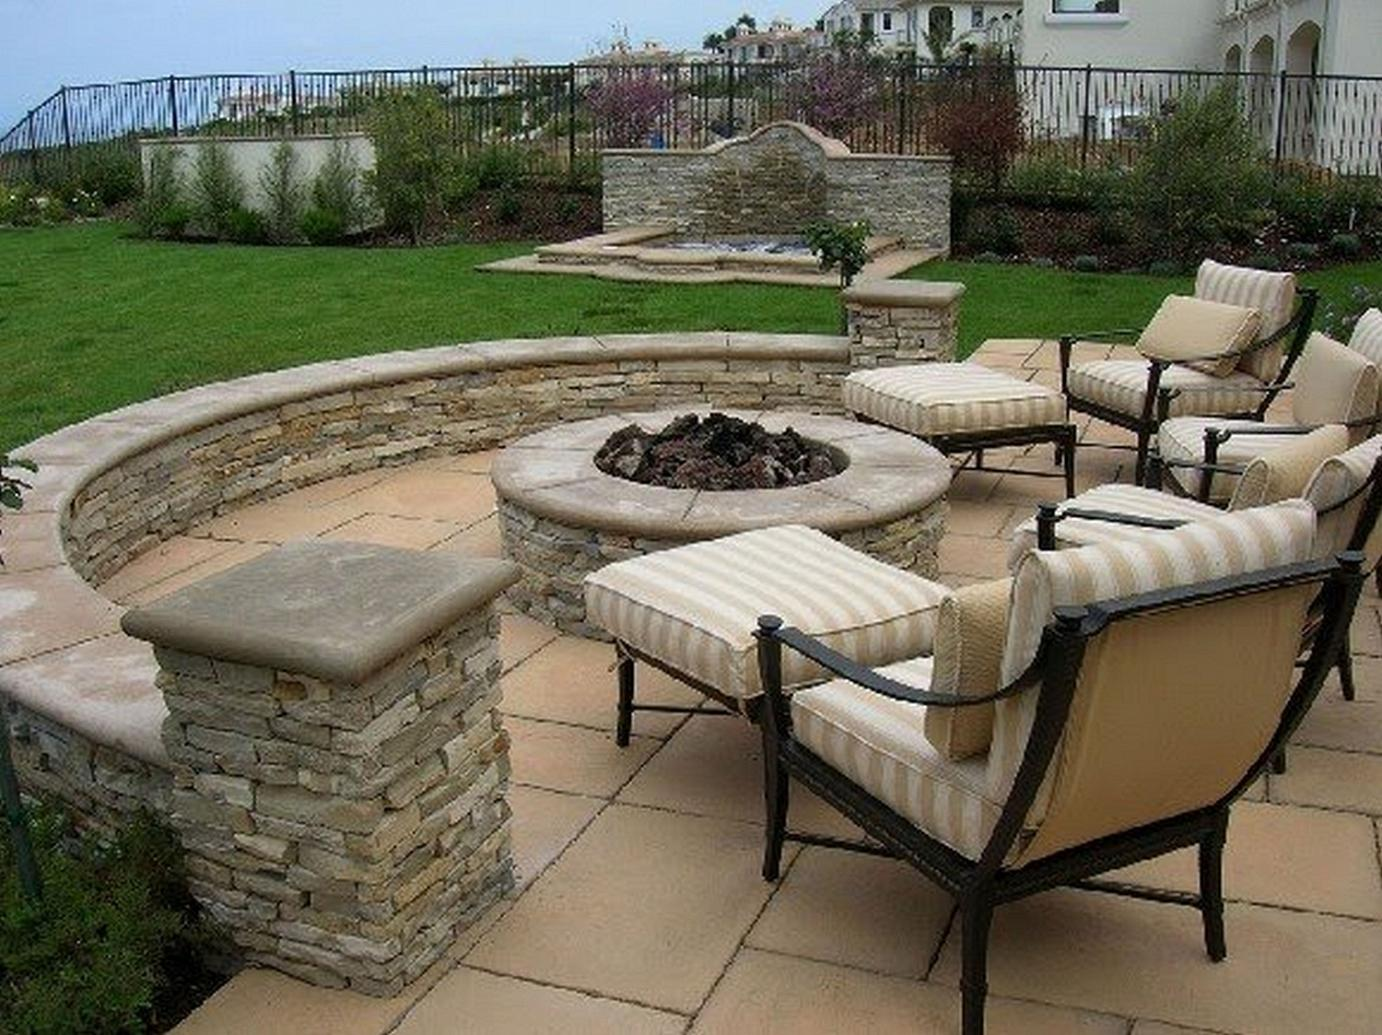 Backyard patio ideas on a budget large and beautiful for Outdoor patio decorating ideas on a budget